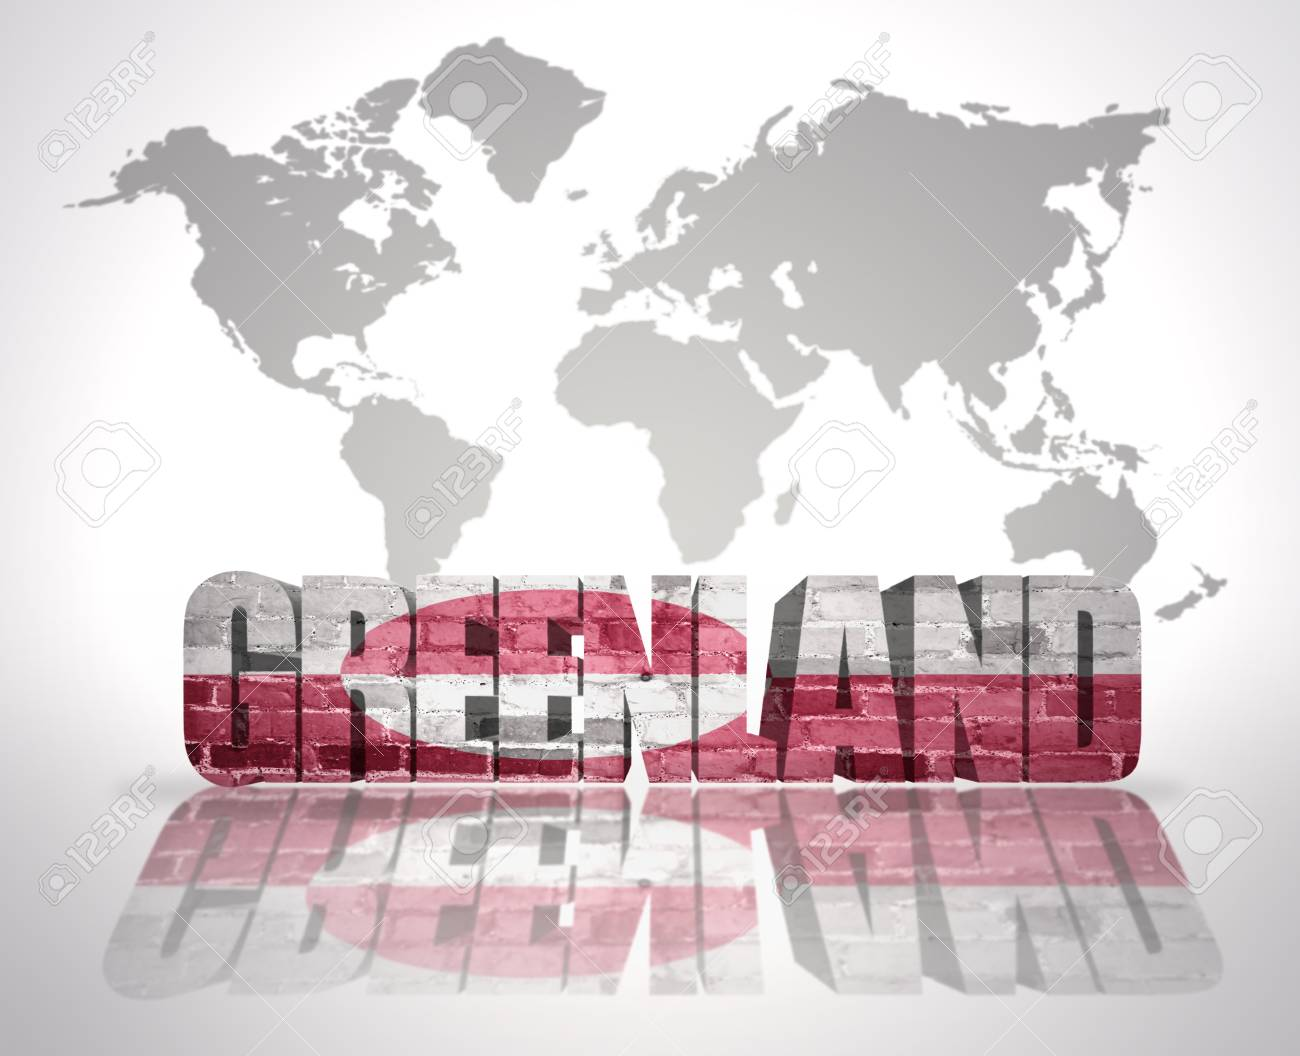 Word Greenland With Greenlandic Flag On A World Map Background Stock ...